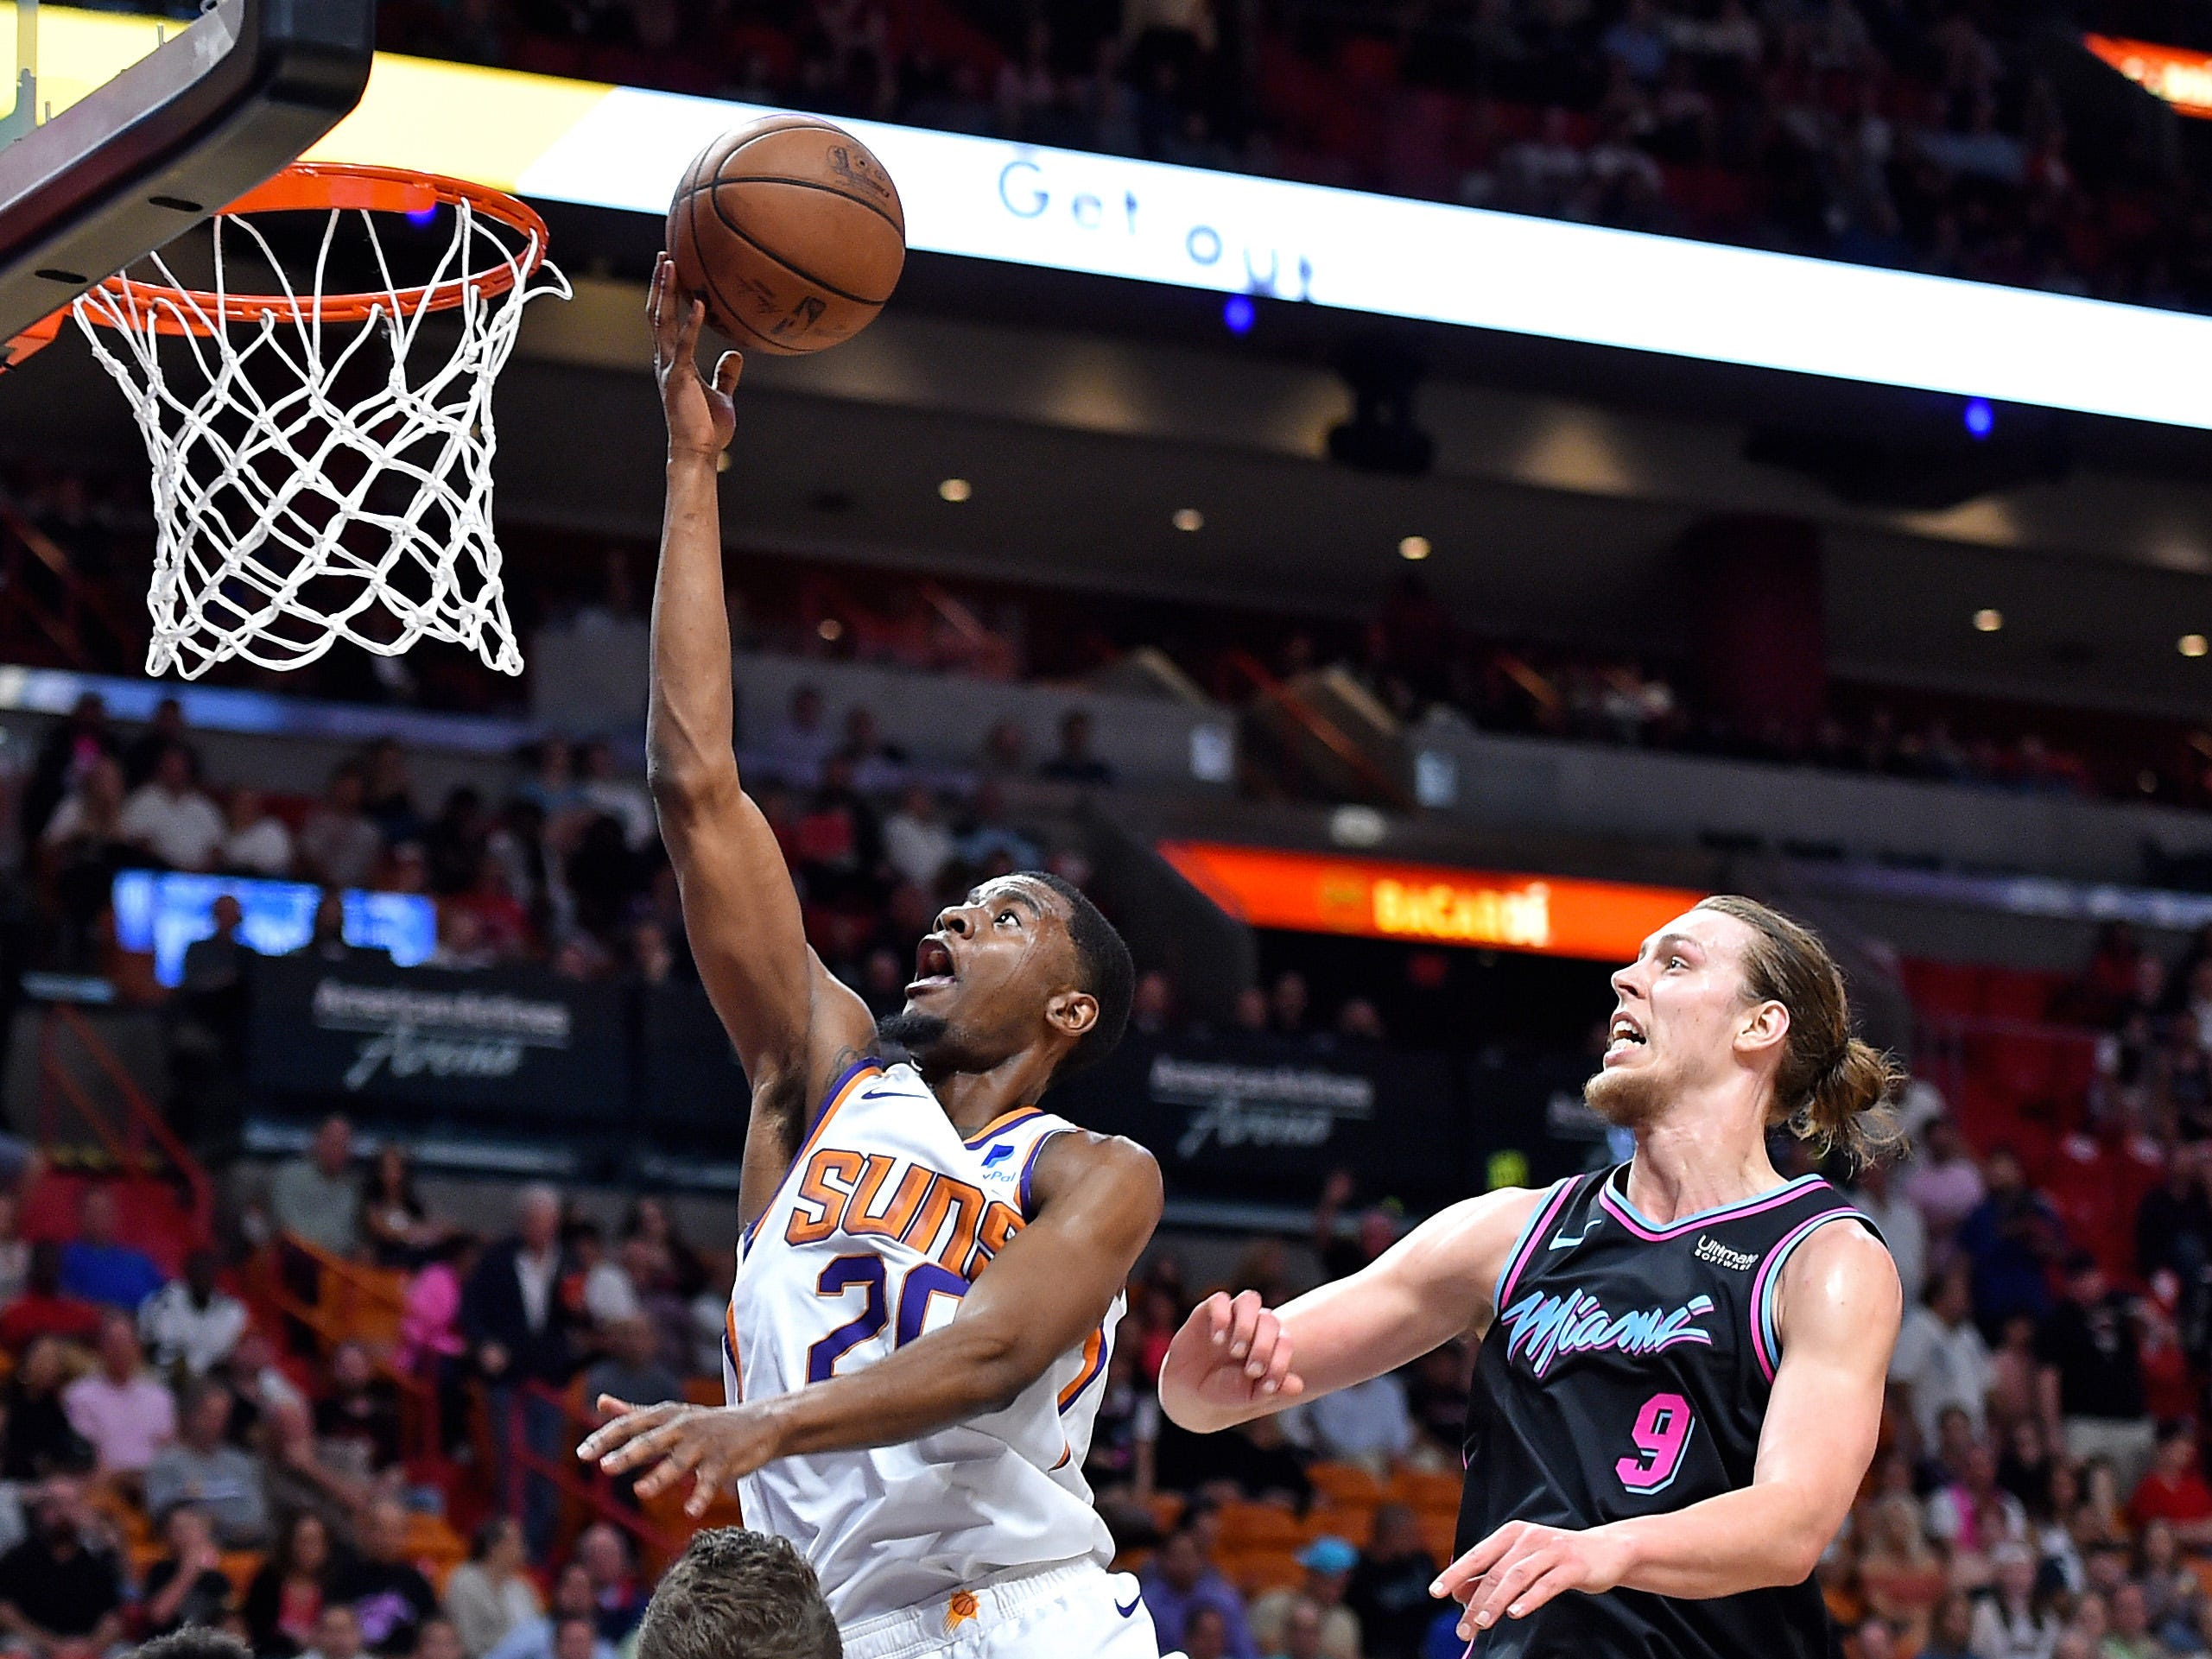 Feb 25, 2019; Miami, FL, USA; Phoenix Suns forward Josh Jackson (20) drives to the basket as Miami Heat forward Kelly Olynyk (9) defends the play during the first half at American Airlines Arena. Mandatory Credit: Steve Mitchell-USA TODAY Sports